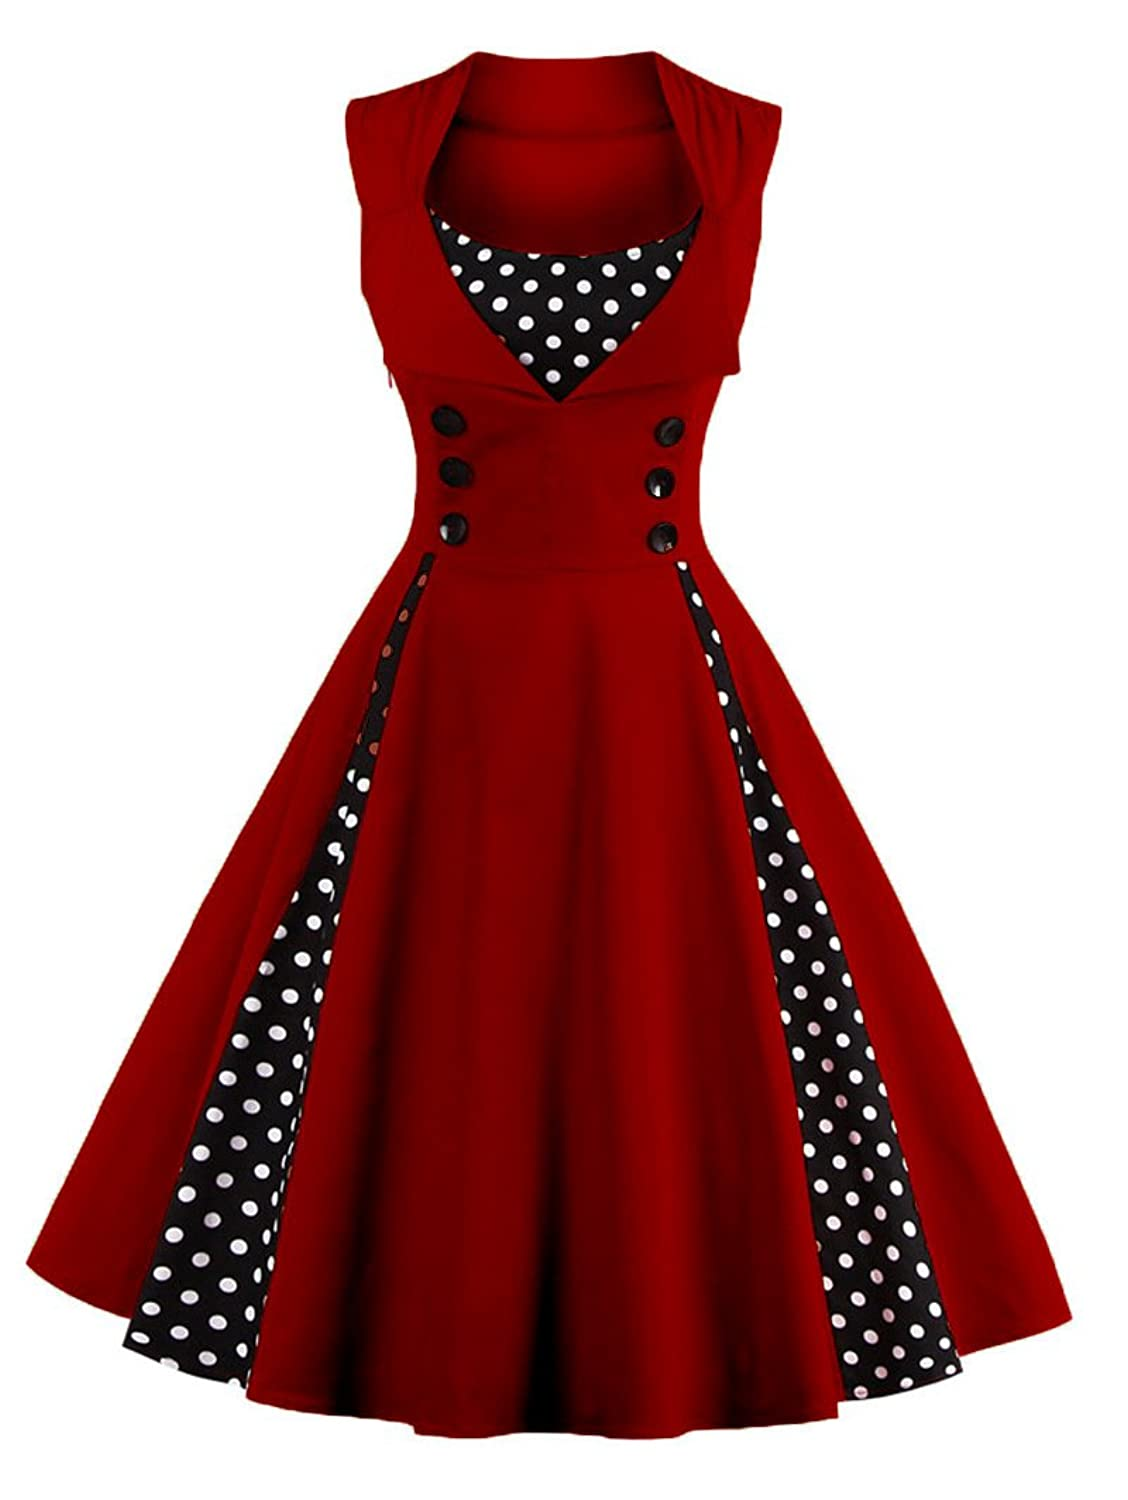 Sailor Dresses, Nautical Theme Dress, WW2 Dresses LUNAJANY Womens Rockabilly Vintage Polka Dot Pin up Swing Cocktail Party Dress $24.59 AT vintagedancer.com